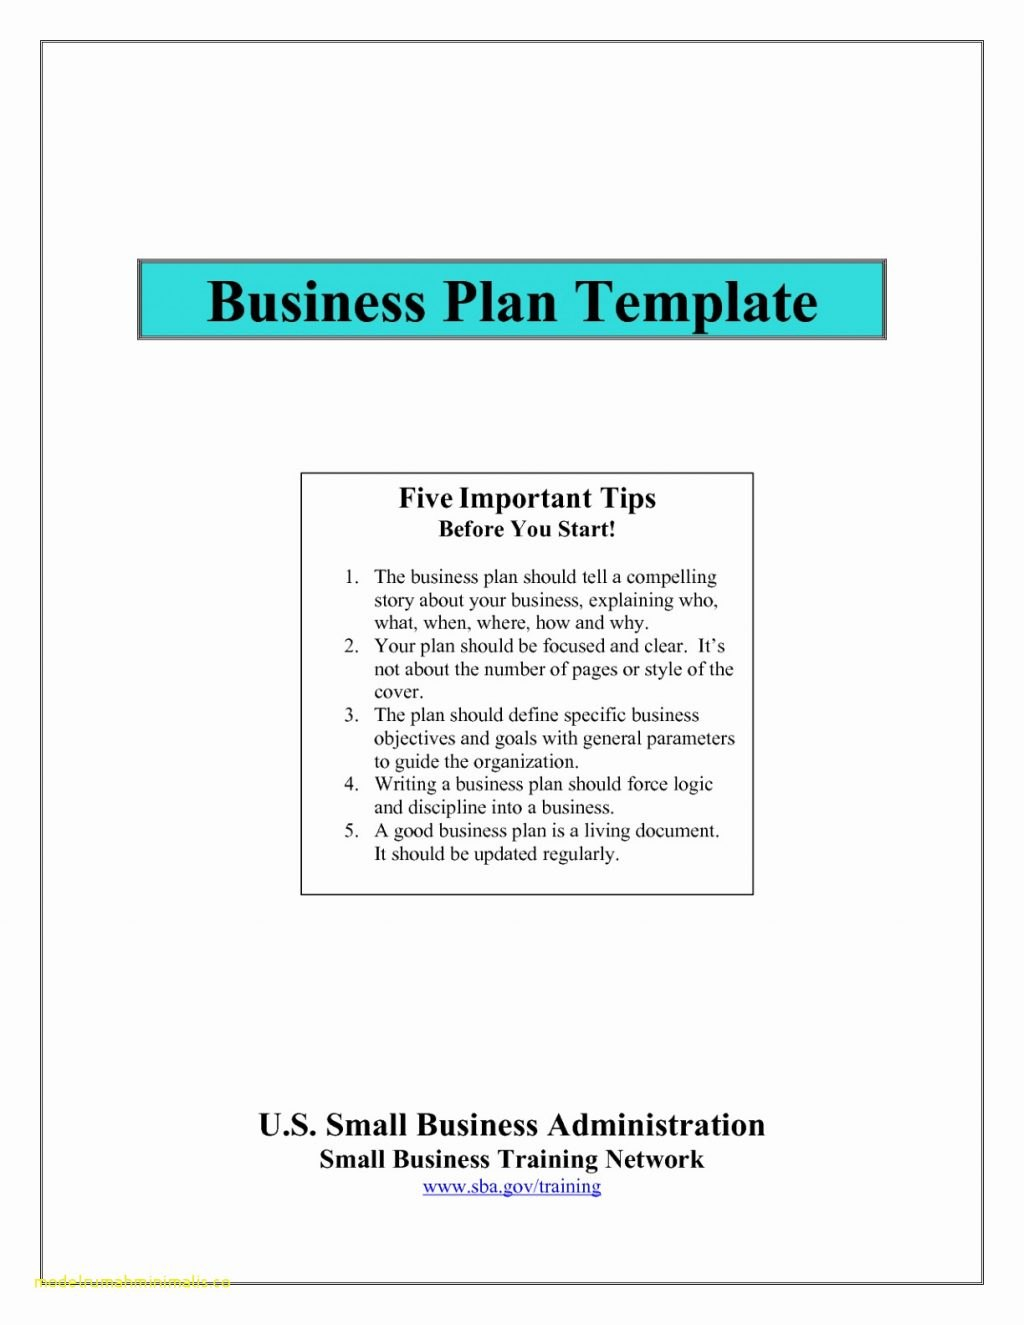 Top Result Self Storage Business Plan Template Beautiful Fashion Intended For Self Storage Business Plan Template